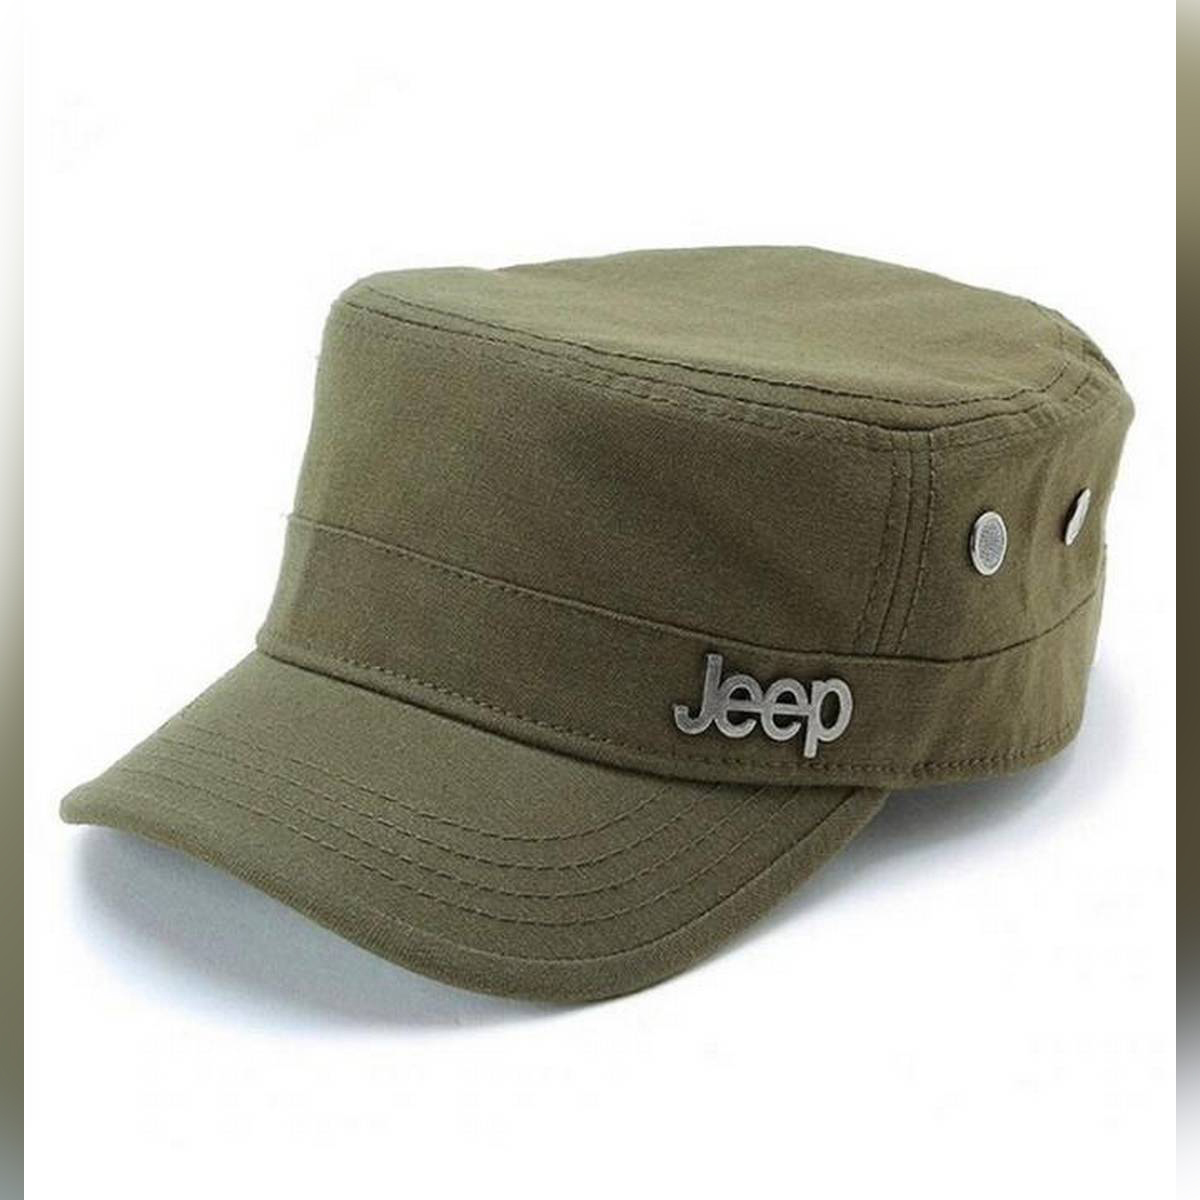 Army Style Jeep Cap for Fashion and Sun Protection Vintage Baseball Cap Sport Sun Hat